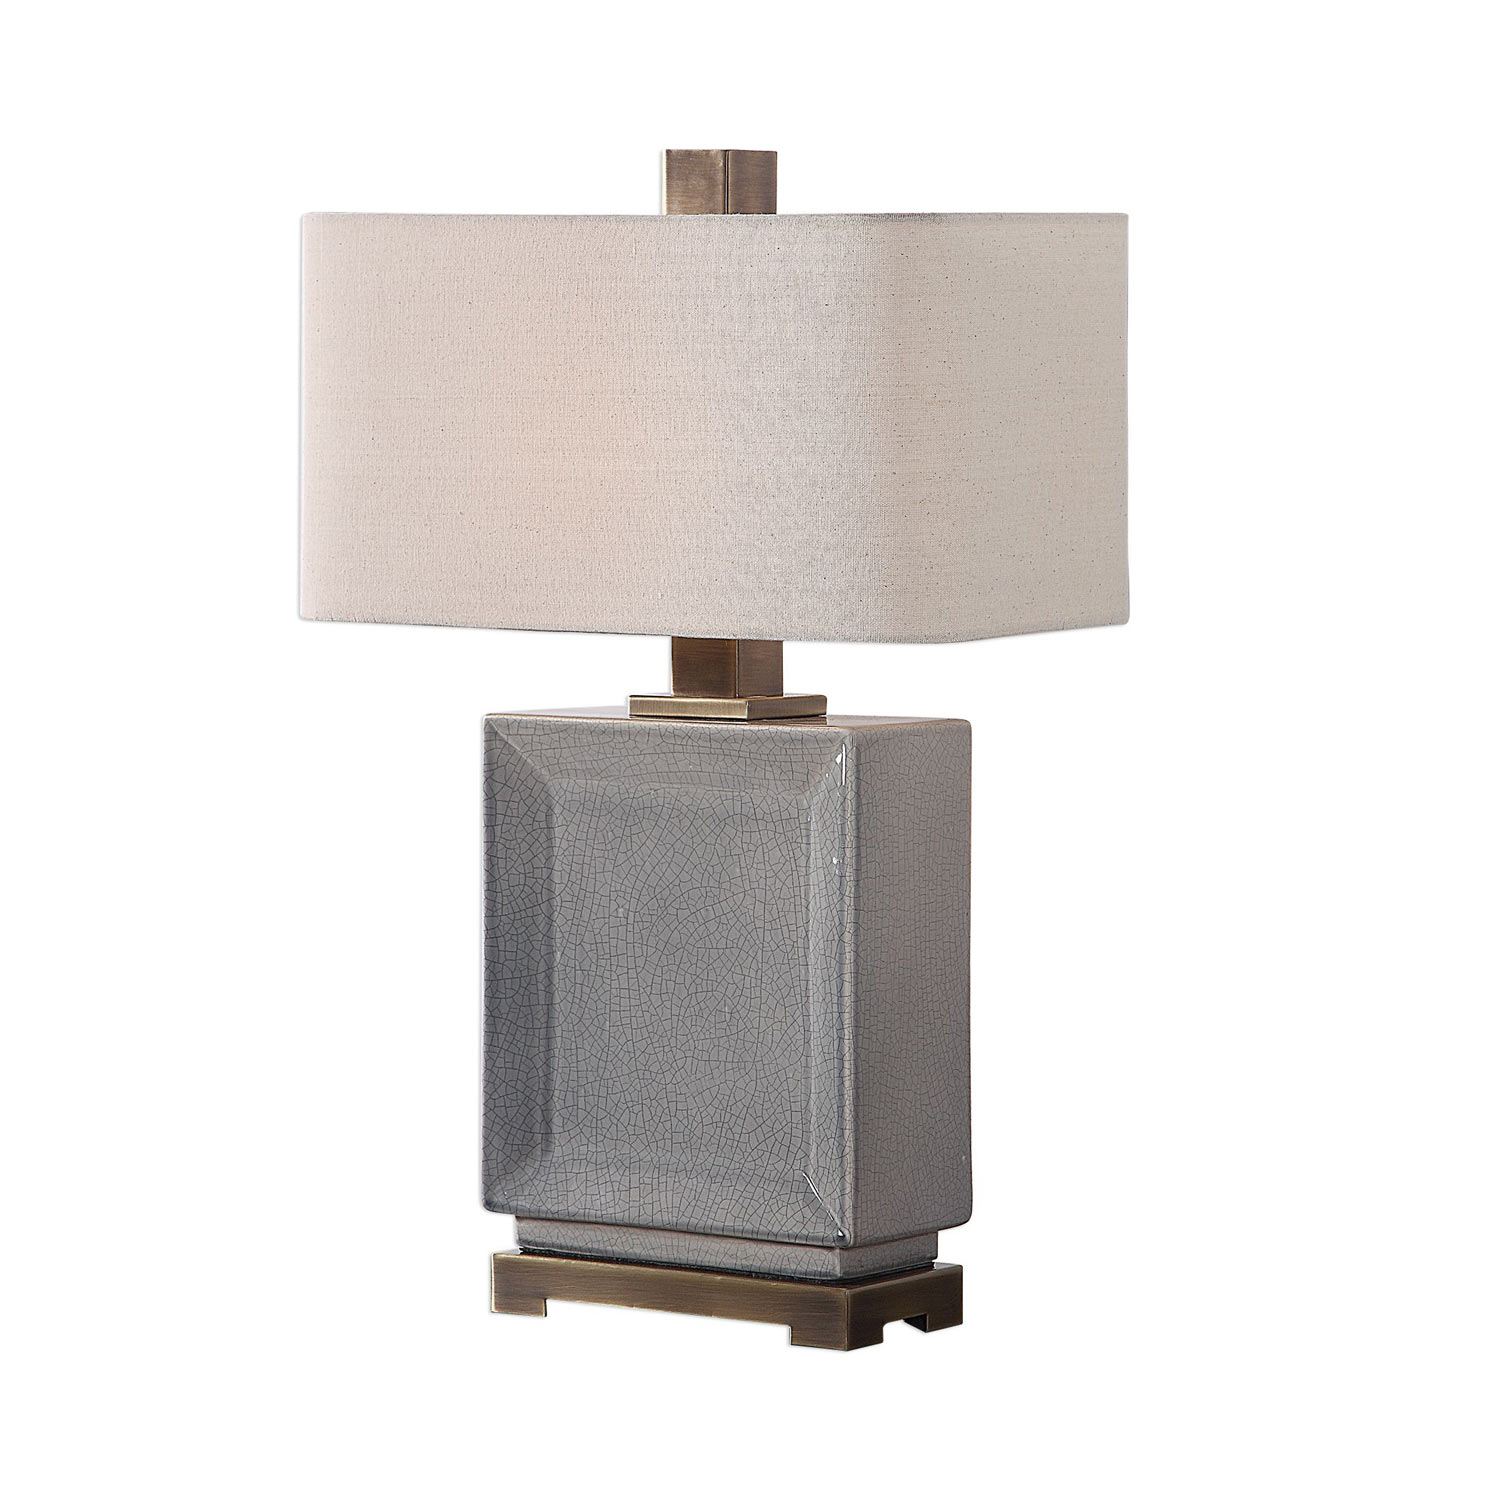 Uttermost Abbot Table Lamp - Crackled Gray